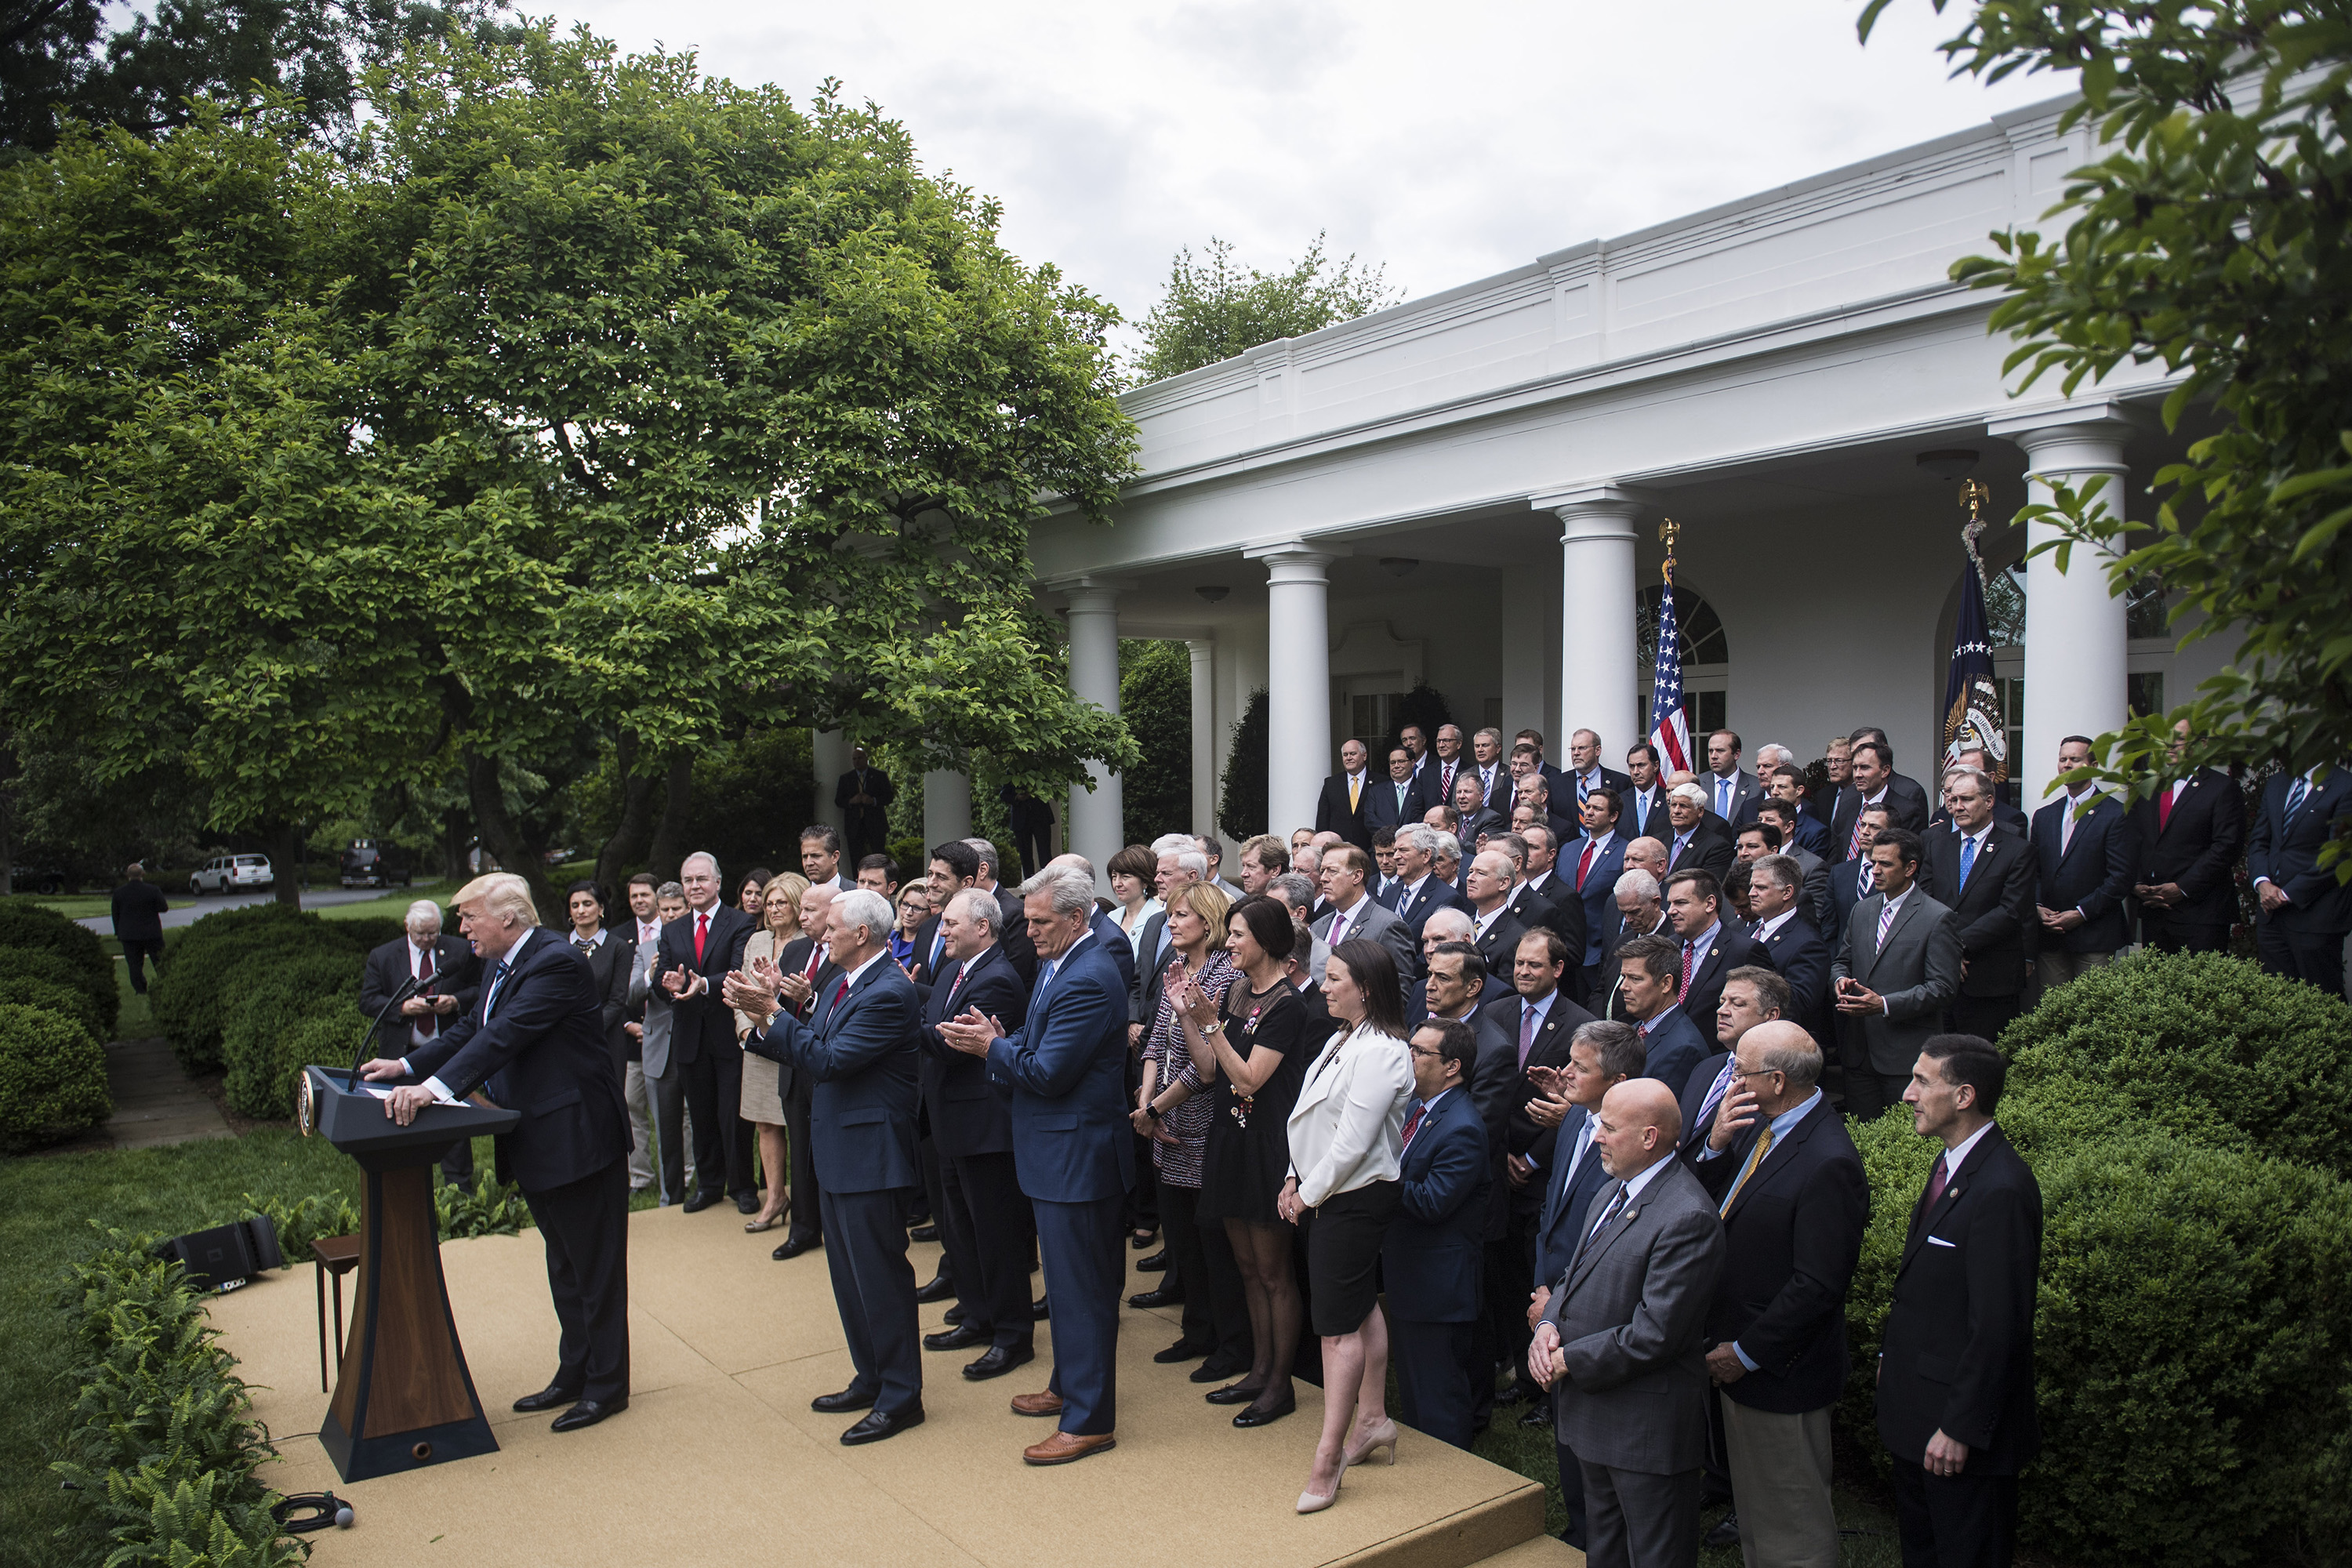 President Trump speaks in the Rose Garden after the House pushed through a health care bill on Thursday. (Washington Post photo by Jabin Botsford)